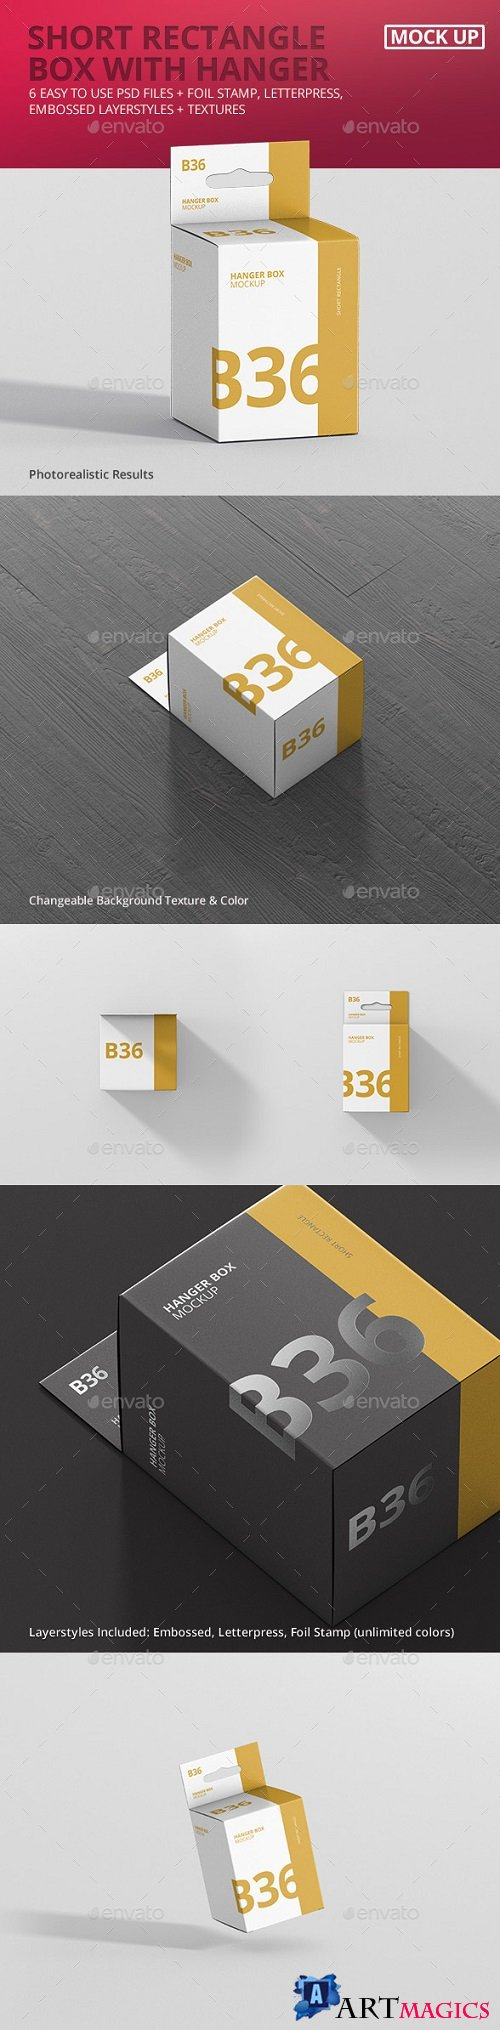 Box Mockup - Short Rectangle Size with Hanger - 21308405